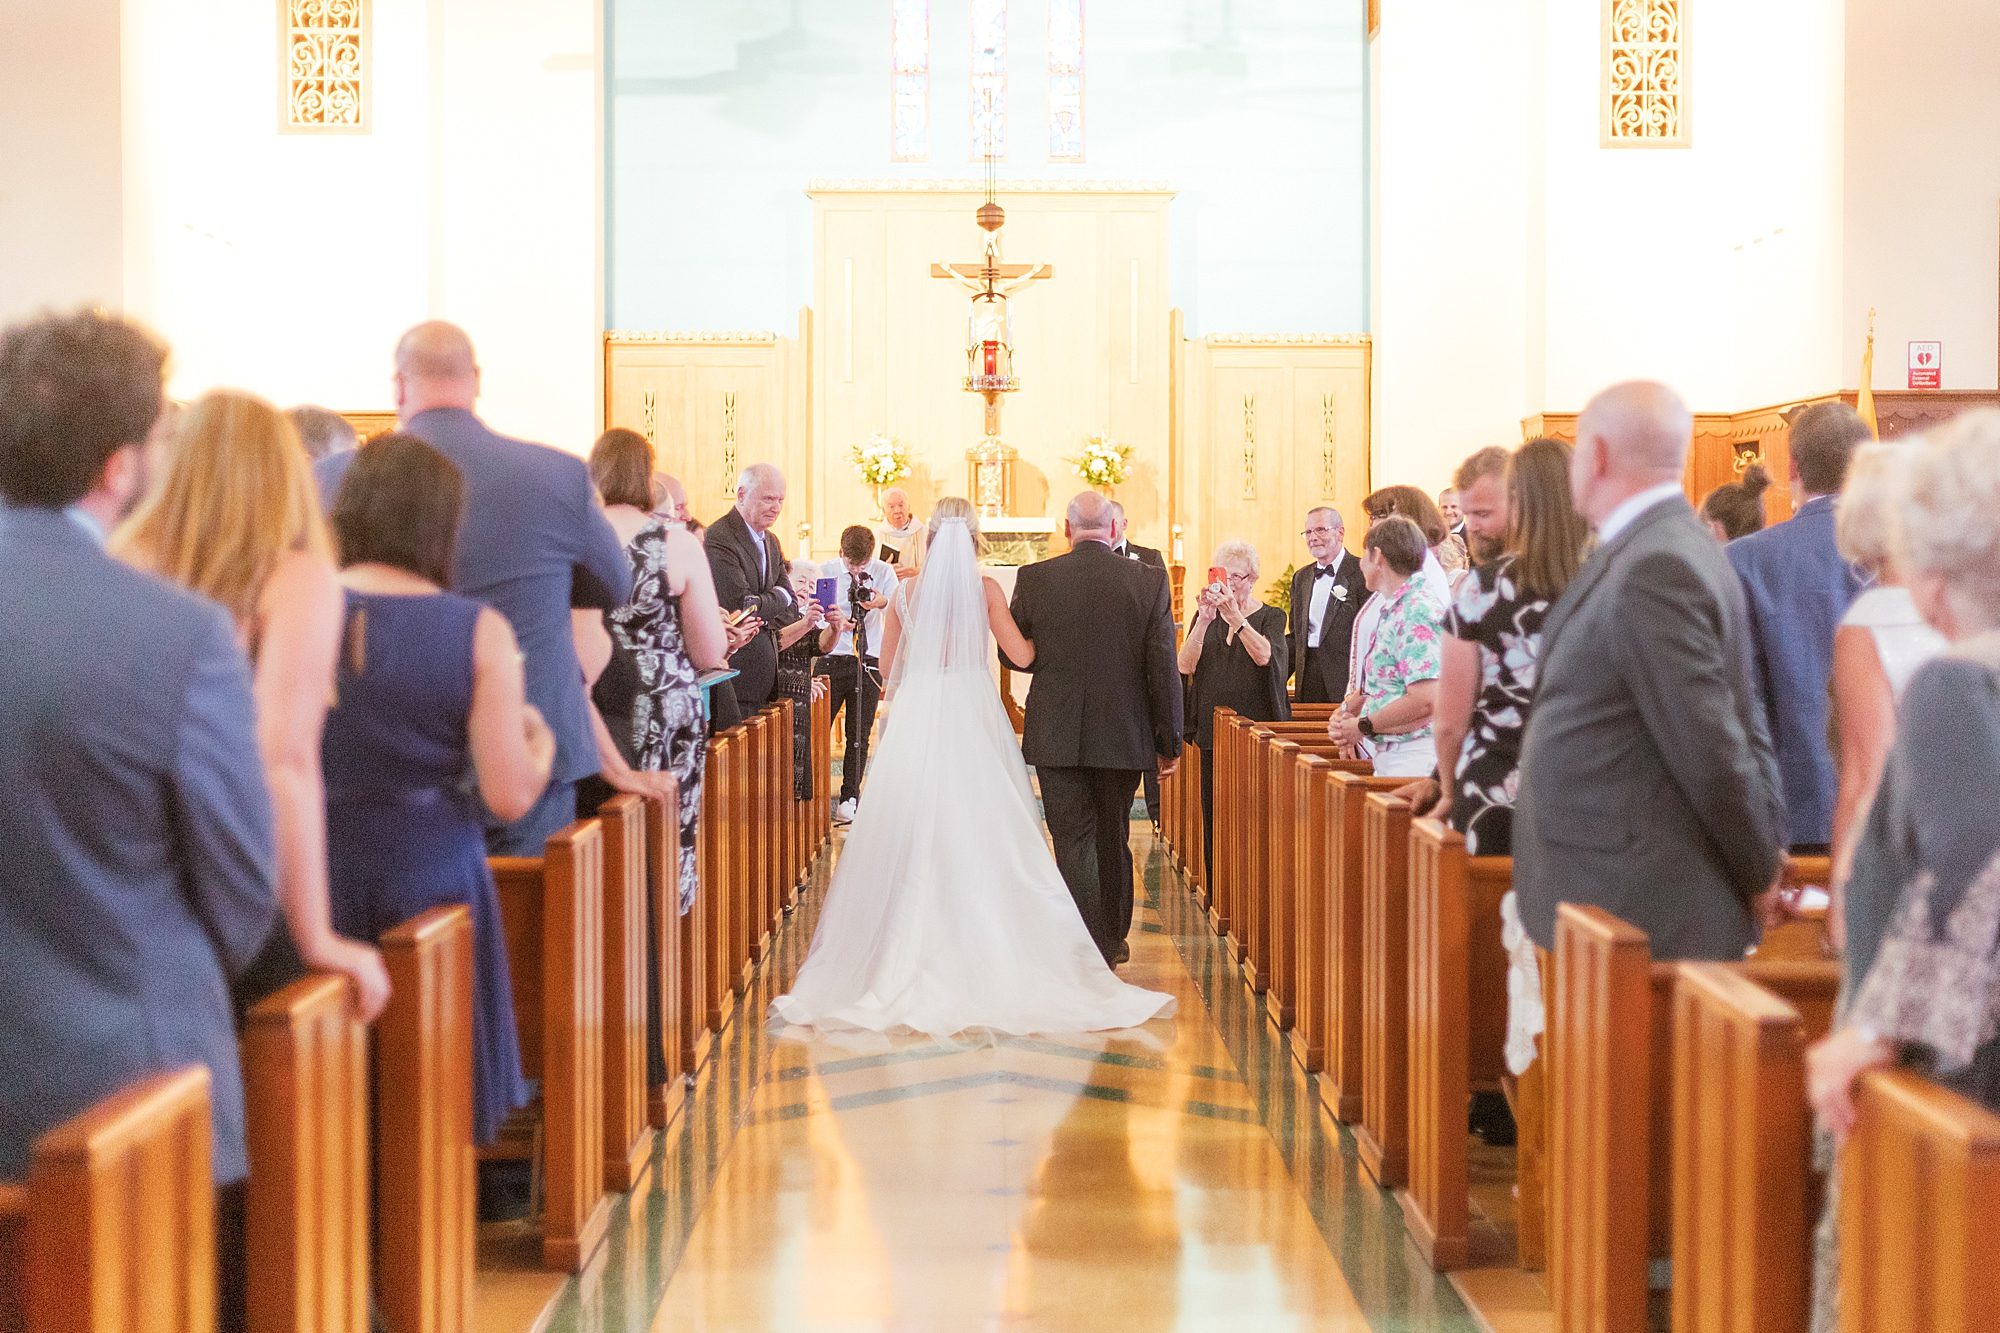 Natural and Vibrant Wedding Photography at the Reeds in Stone Harbor NJ by Magdalena Studios 0021